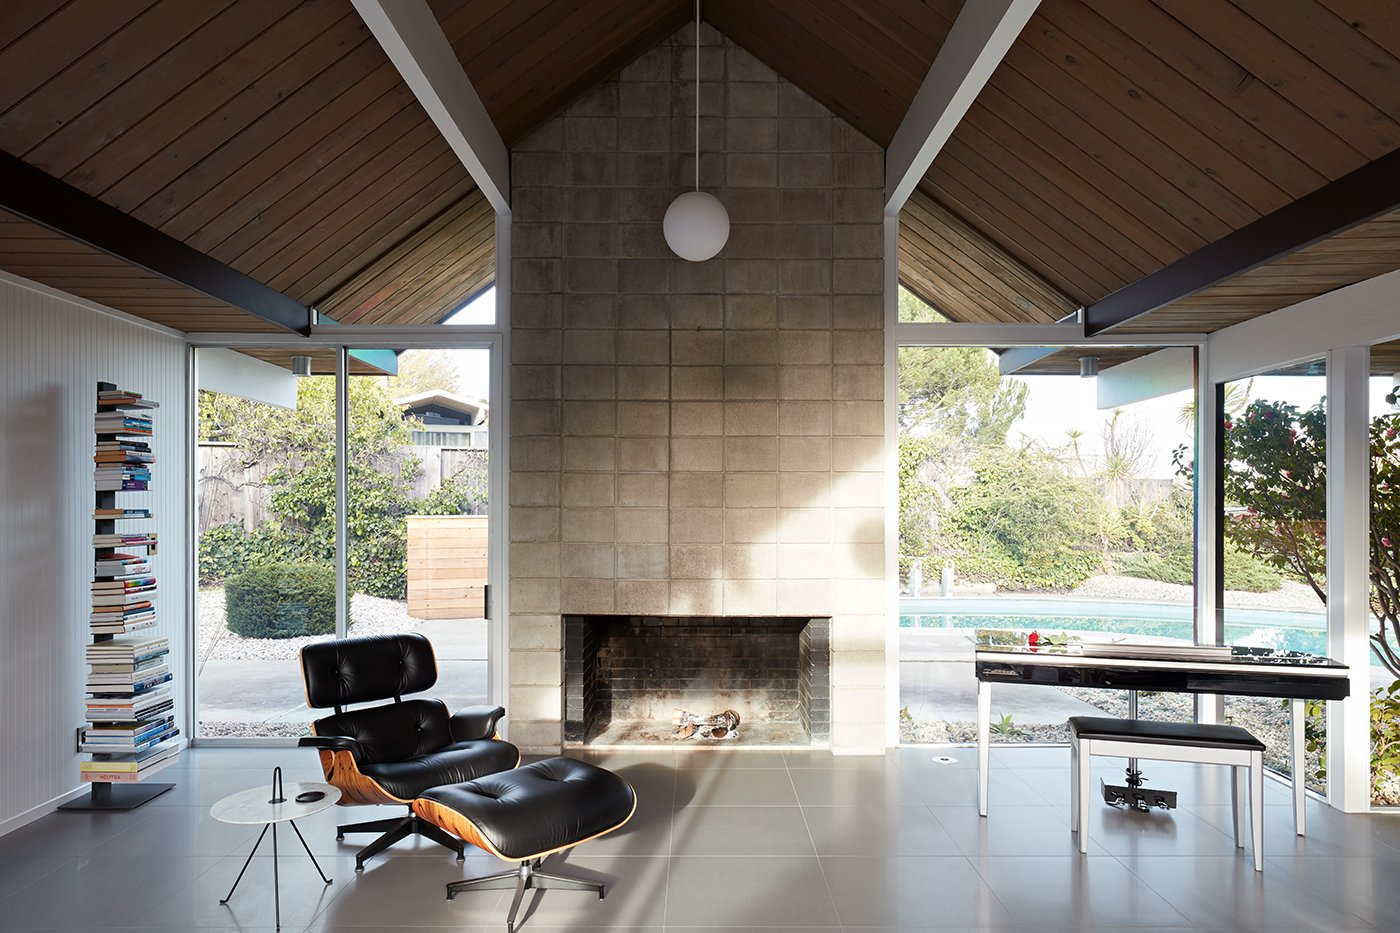 Living Room, Chair, End Tables, Wood Burning Fireplace, Recliner, Pendant Lighting, Standard Layout Fireplace, and Ottomans Another original Eichler element which the homeowners have chosen to keep is the concrete masonry fireplace.    Photo 9 of 14 in This Eichler Home in California Mixes Scandinavian Vibes With Midcentury Charm